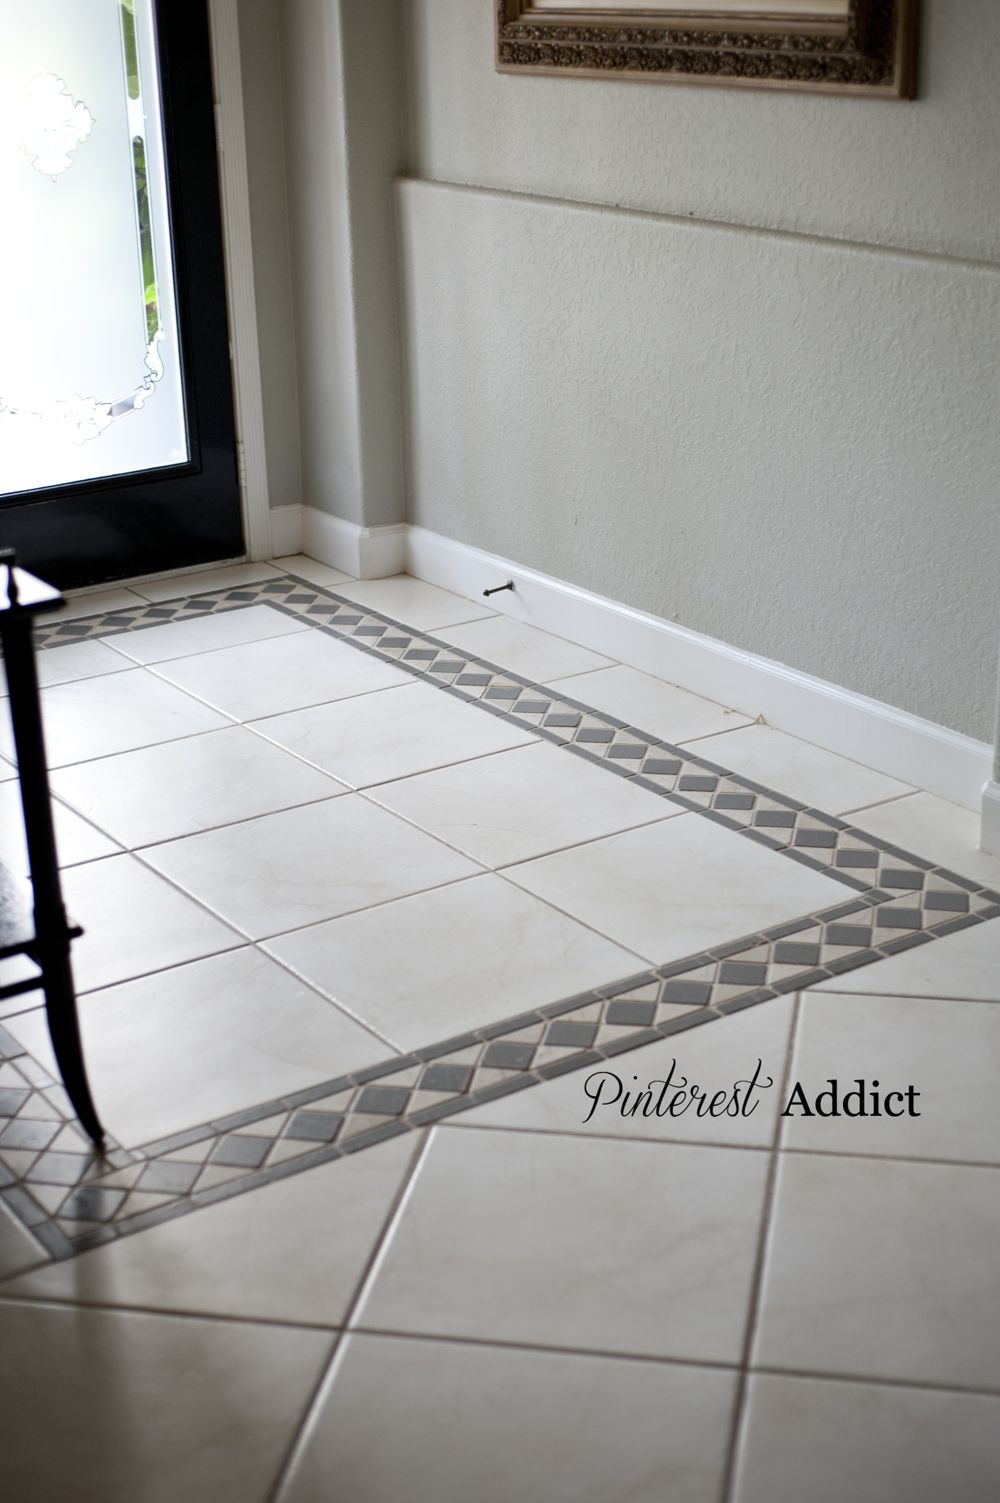 Painted floor tiles after one year x i m primer bonder kitchen painted floor tiles after one year x i m primer bonder dailygadgetfo Choice Image